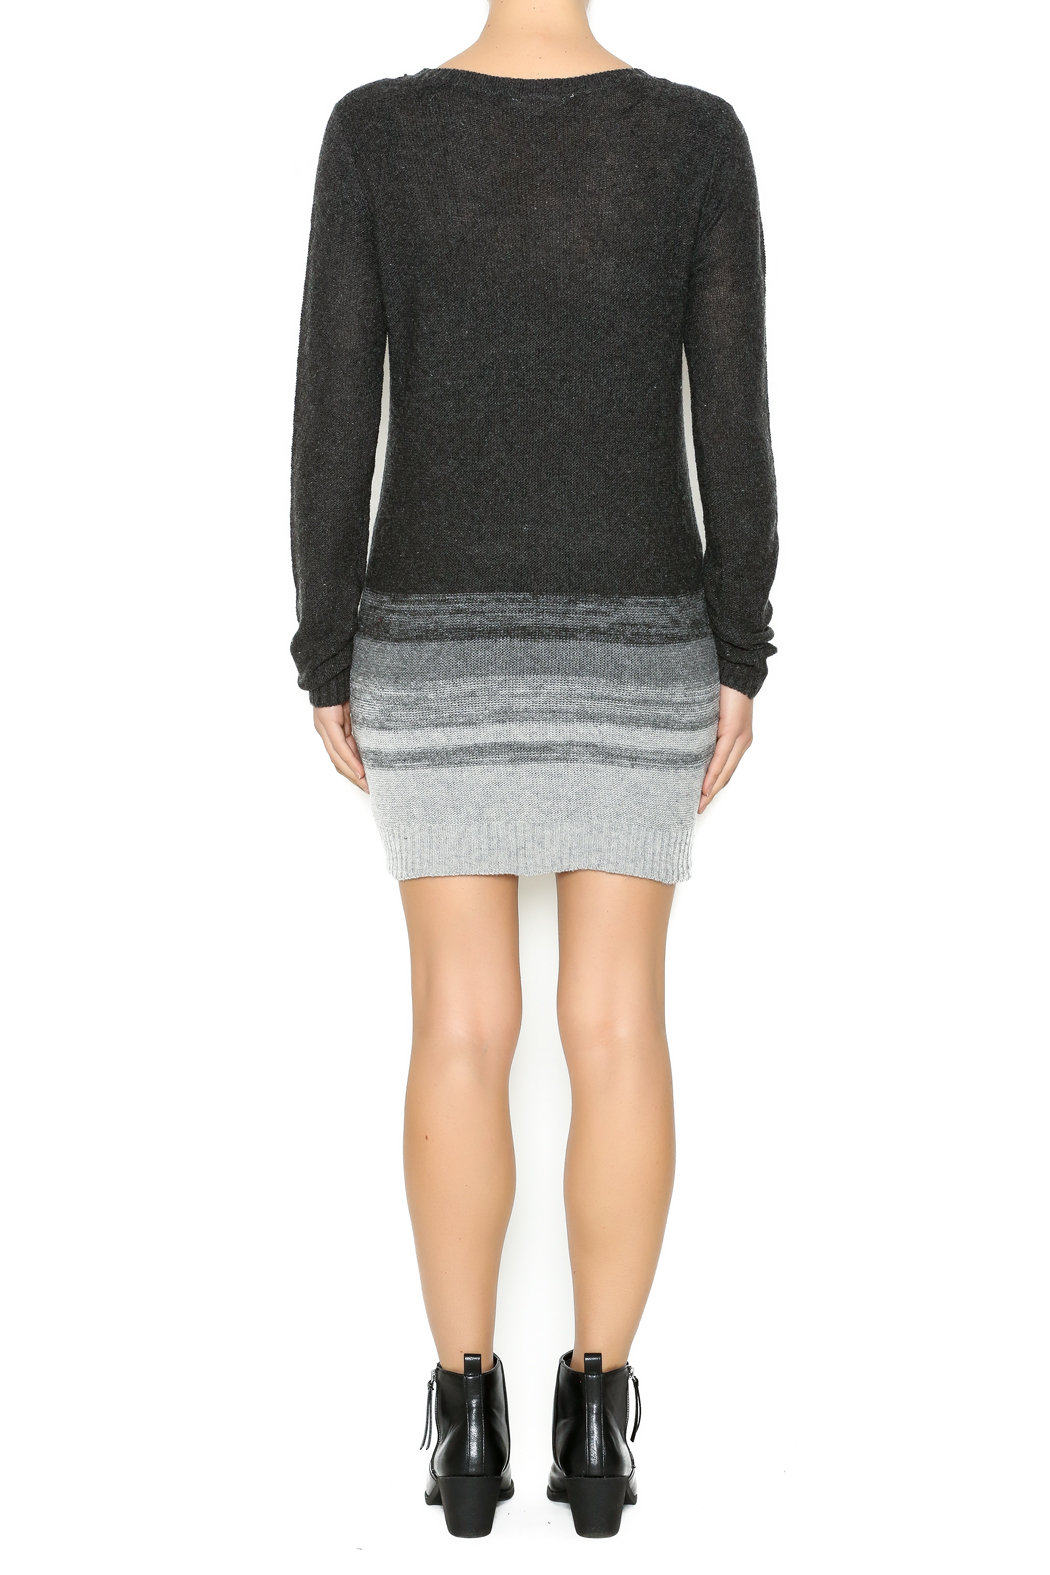 Hem Thread Ombre Sweater Dress From Pennsylvania By